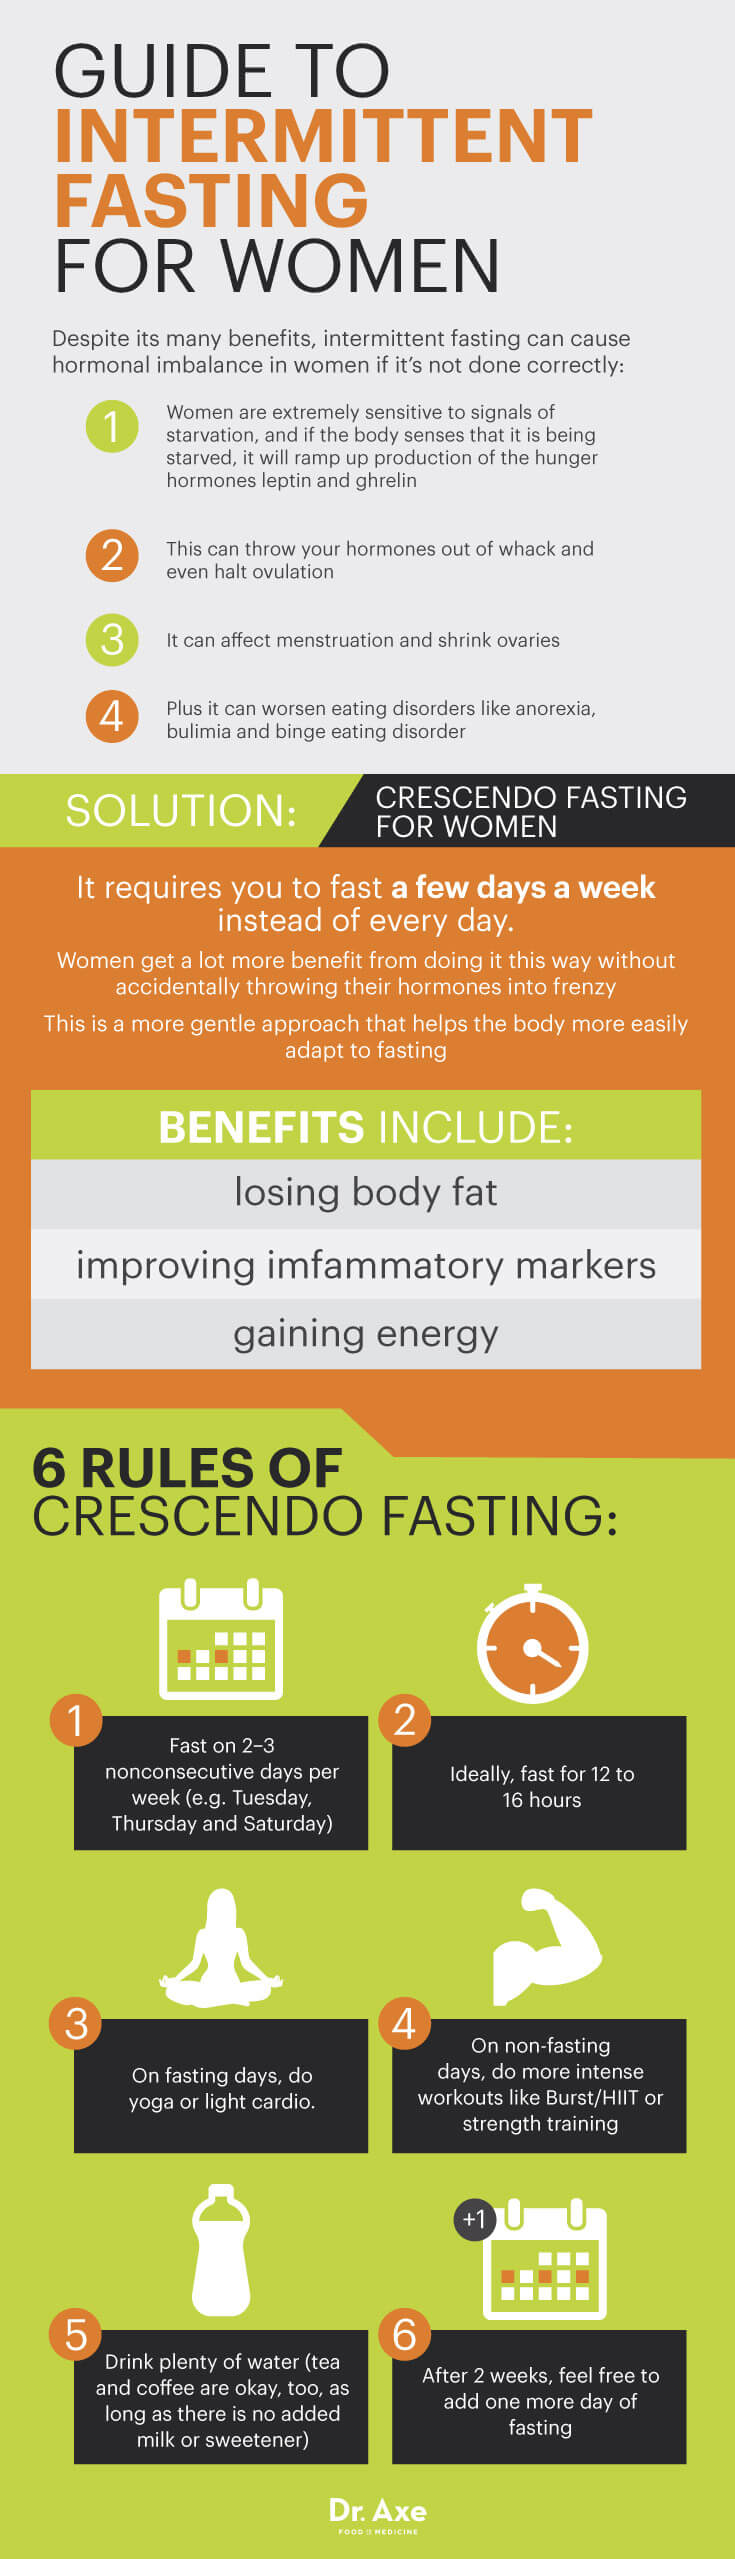 The Secret To Intermittent Fasting For Women  Dr Axe